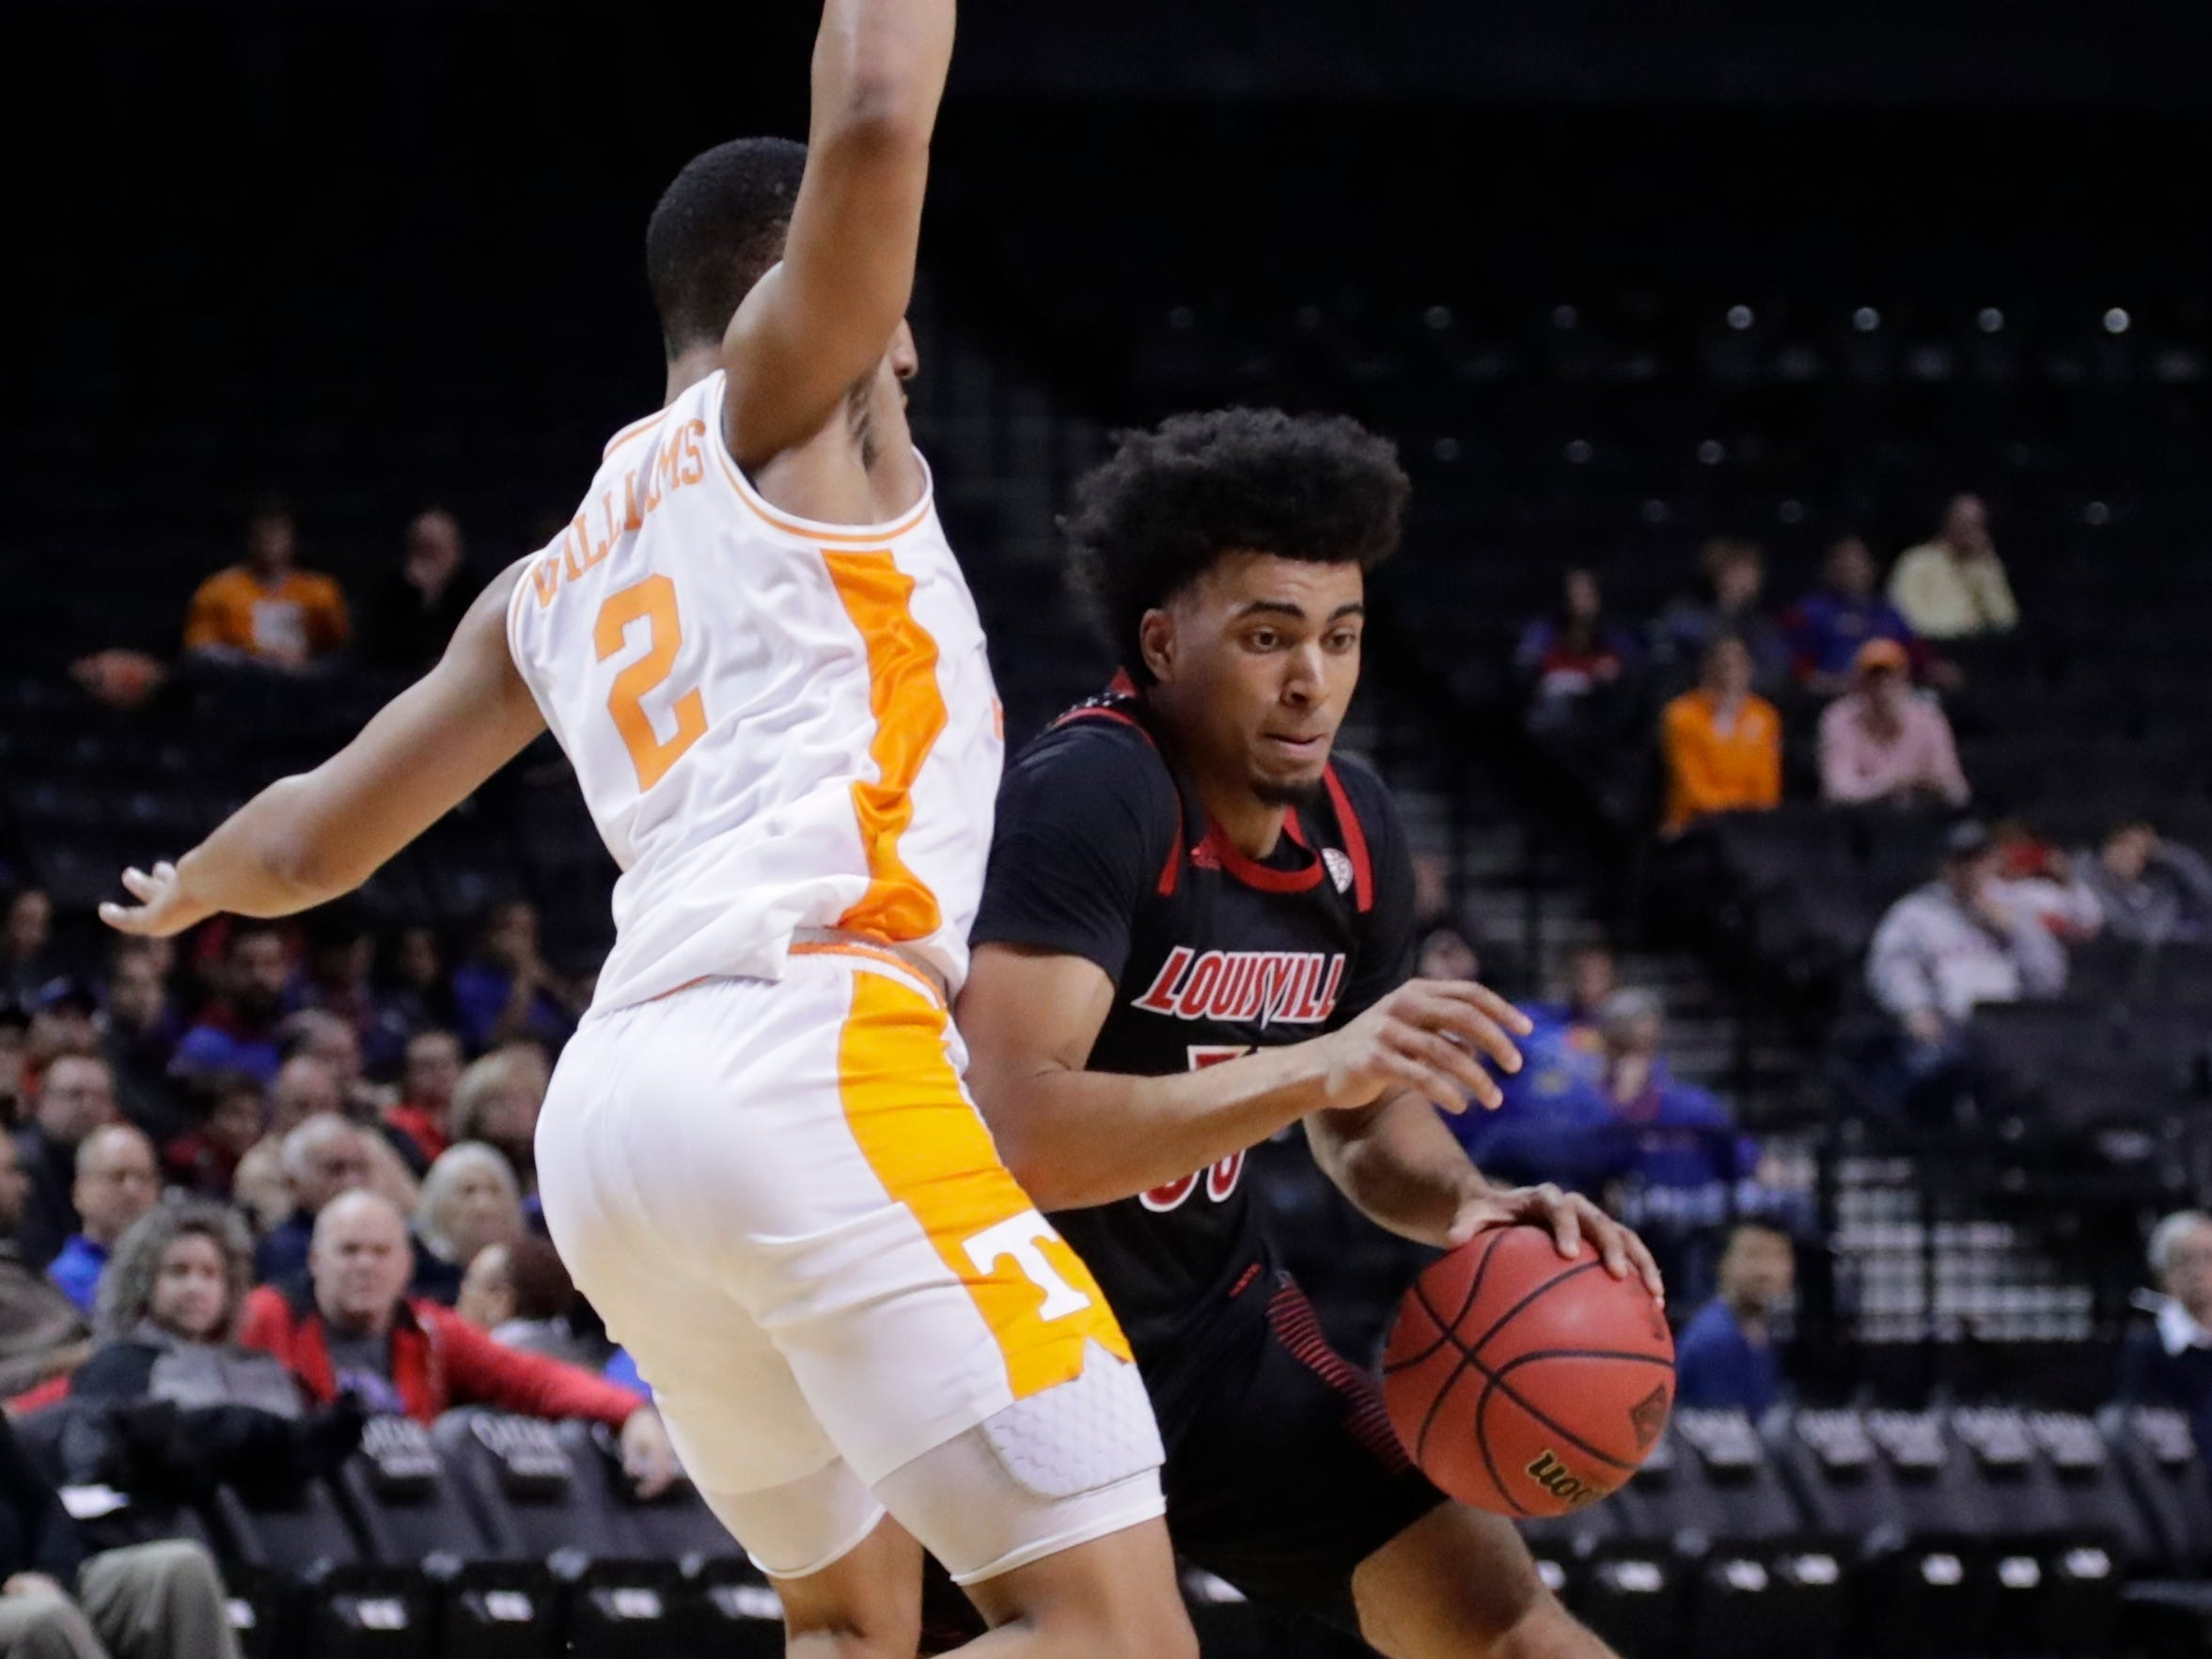 Tennessee's Grant Williams defends Louisville's Jordan Nwora during the second half in the NIT Season Tip-Off tournament Nov. 21, 2018, in New York. Tennessee won 92-81.